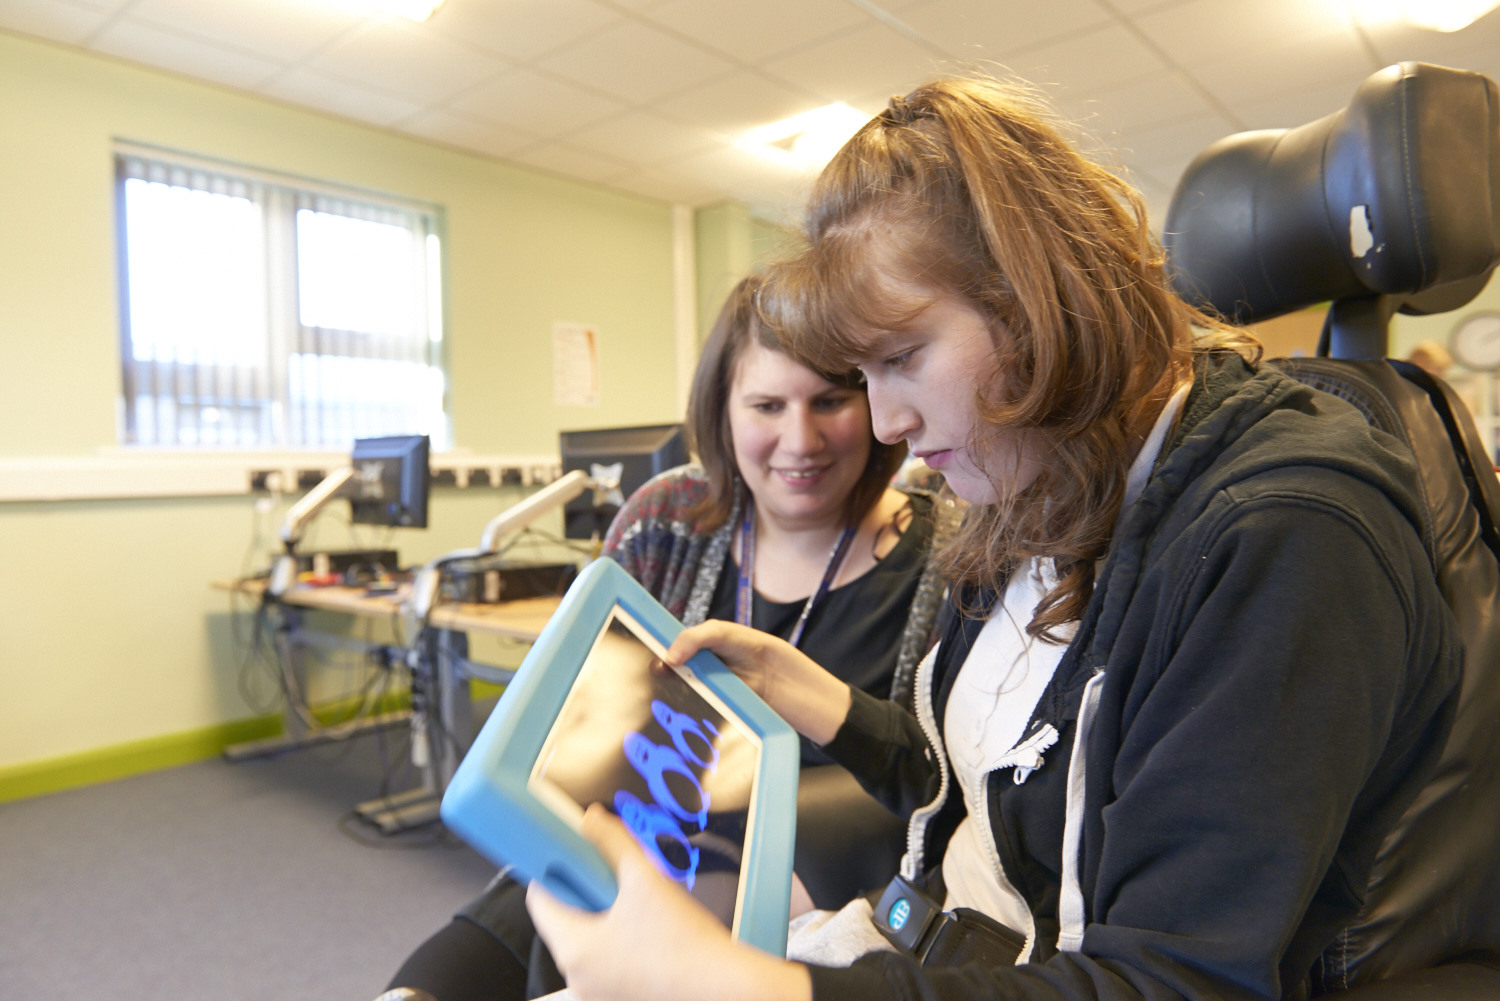 Using an iPad in our accessible IT suite